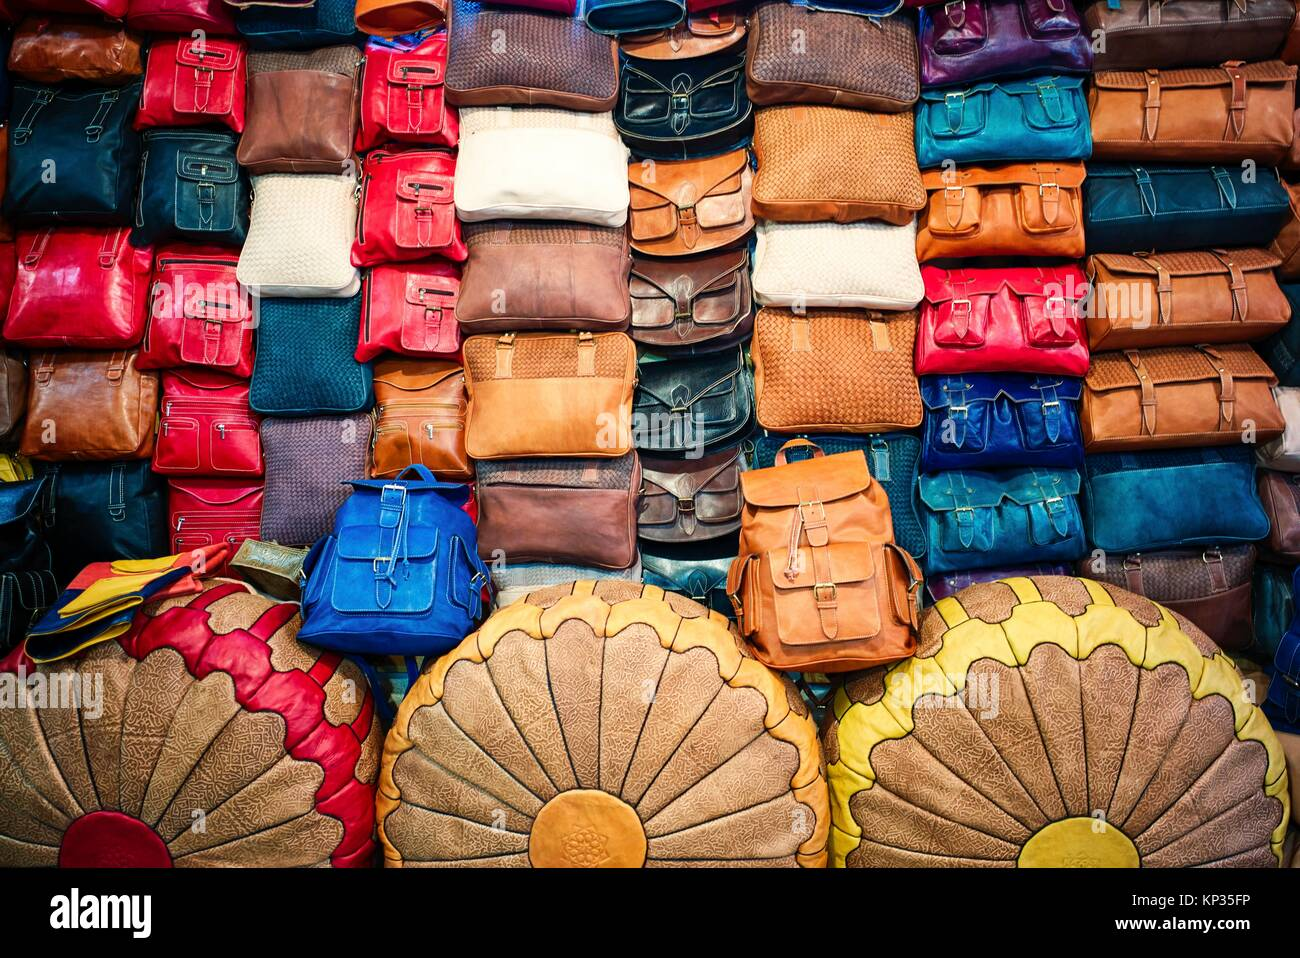 Leather articles shop in the medina of Fez, Morocco - Stock Image